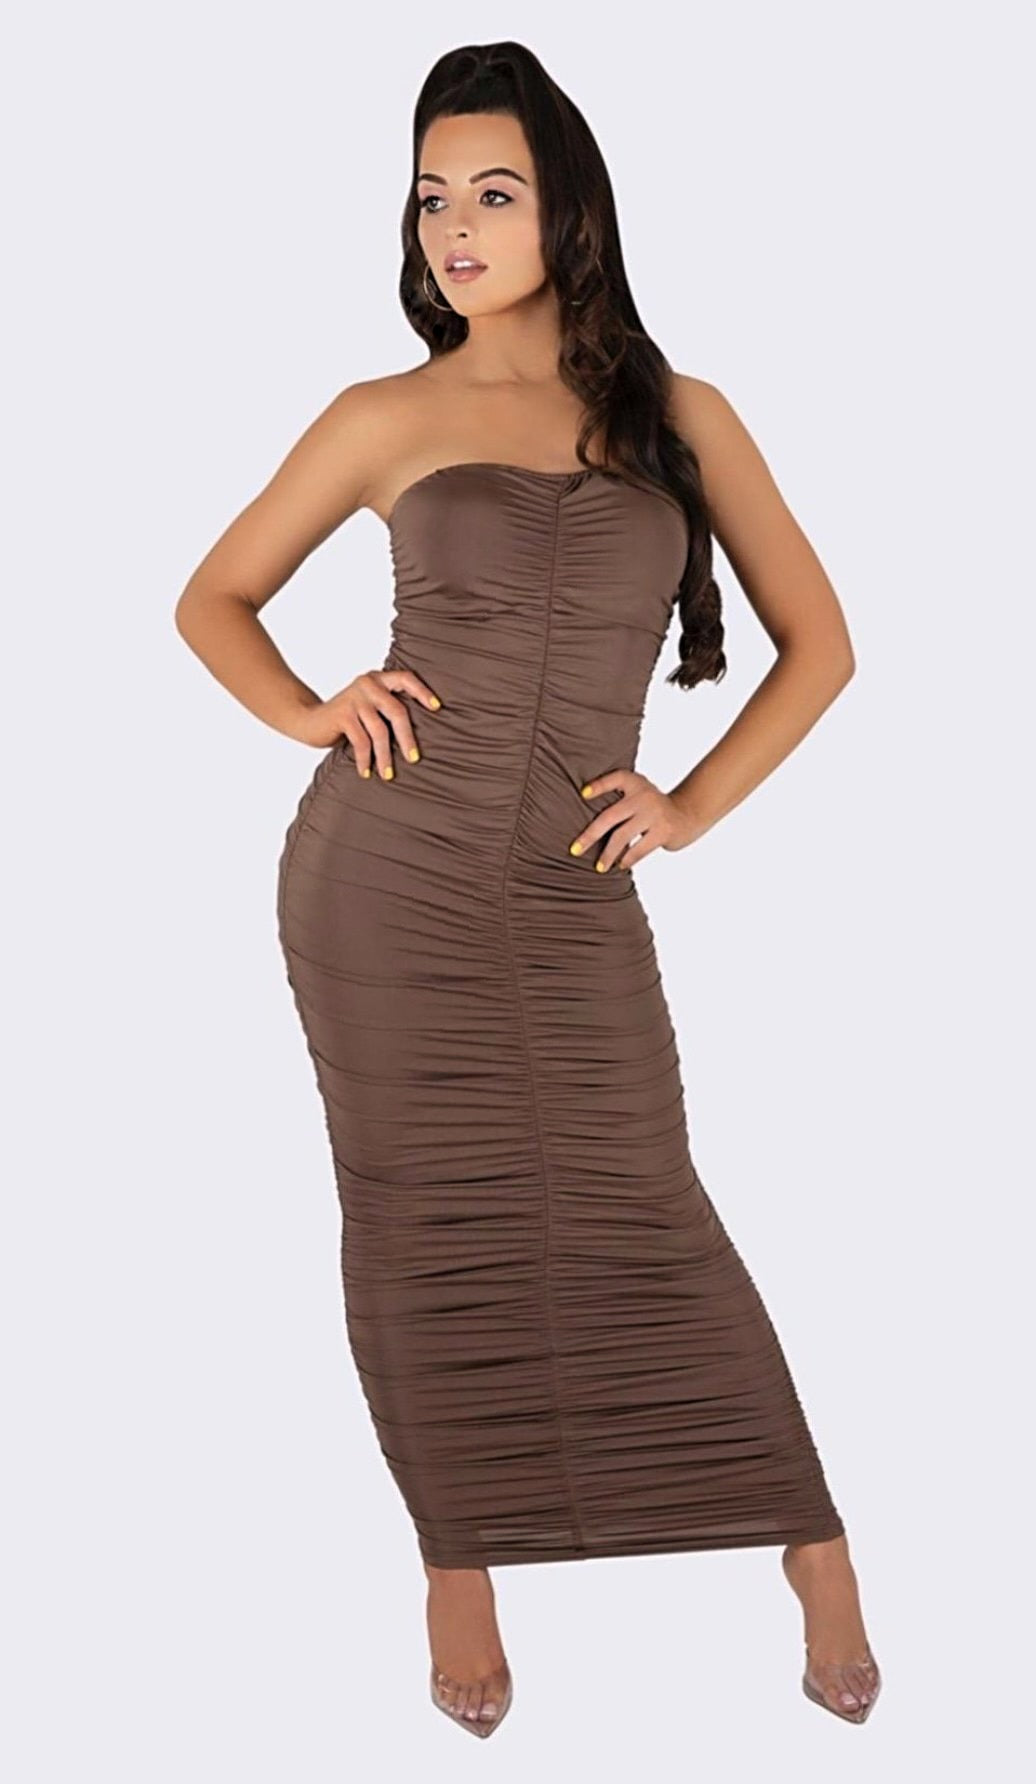 'DAPHNE' Ruched Strapless Maxi Dress - Taupe - GLAMBAE FASHION